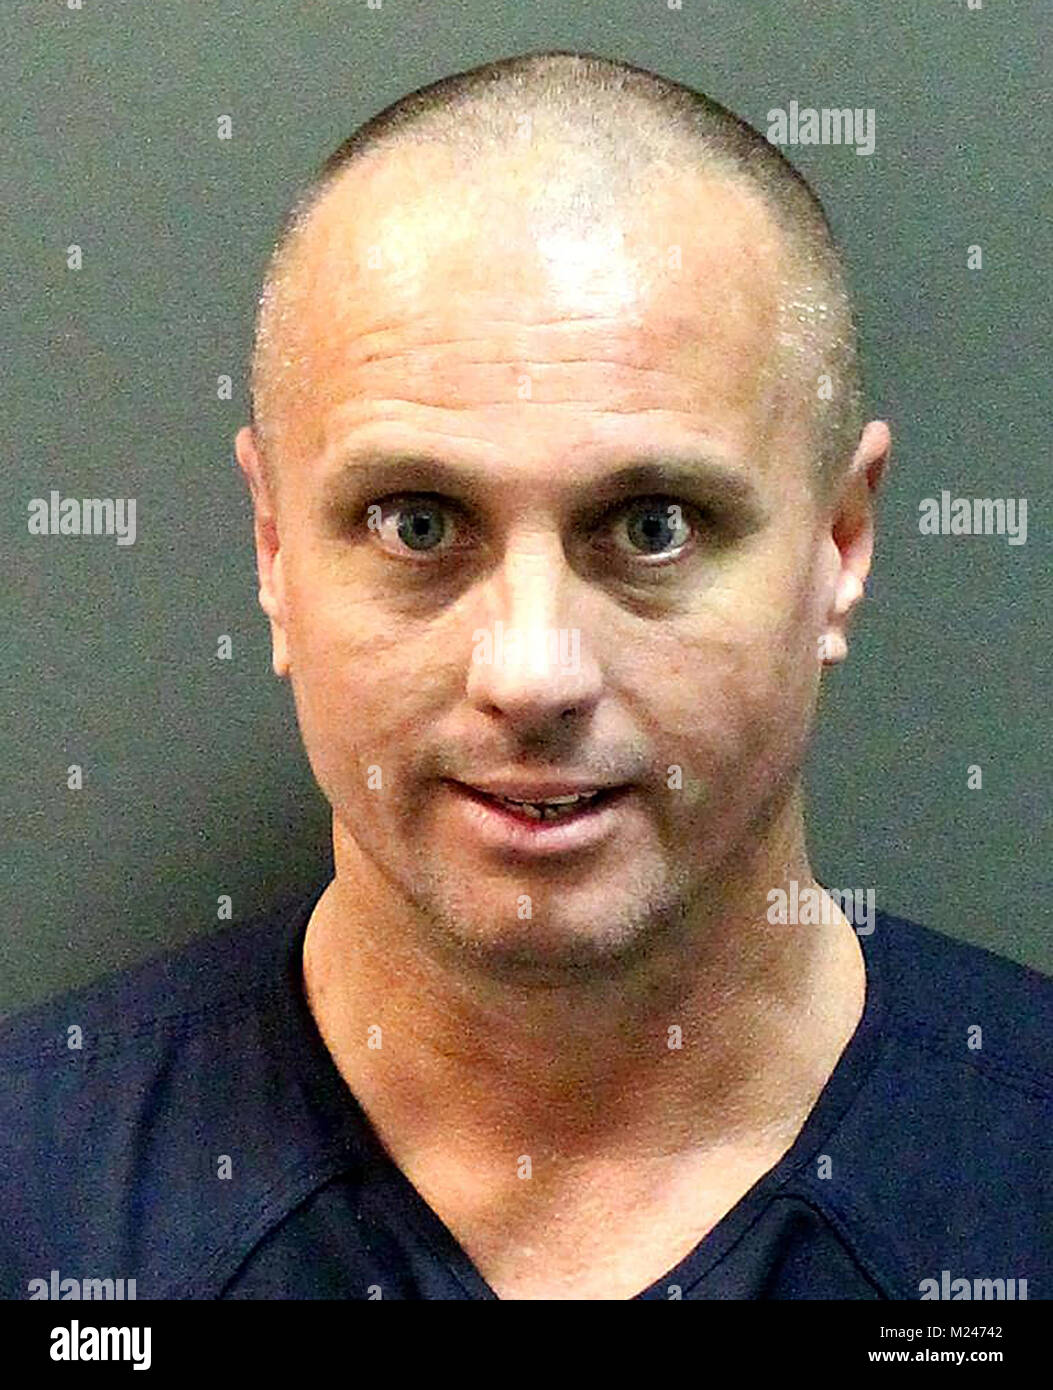 February 2, 2018 - Orlando, Florida, United States -  Michael Shawn Hunt, 43, of Riverview, Florida, shown in this - Stock Image